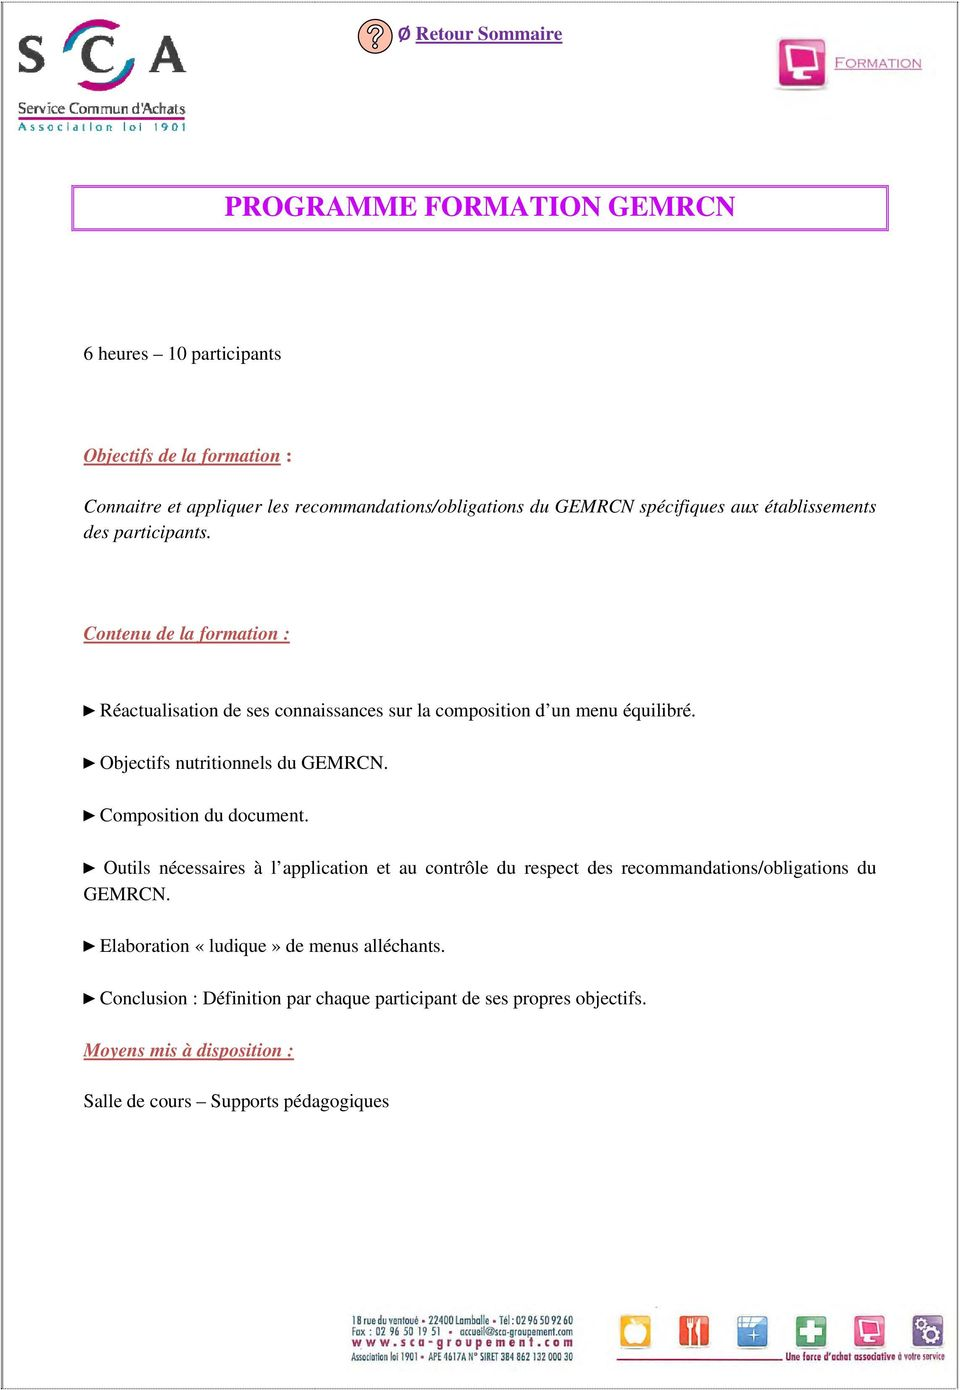 Objectifs nutritionnels du GEMRCN. Composition du document.